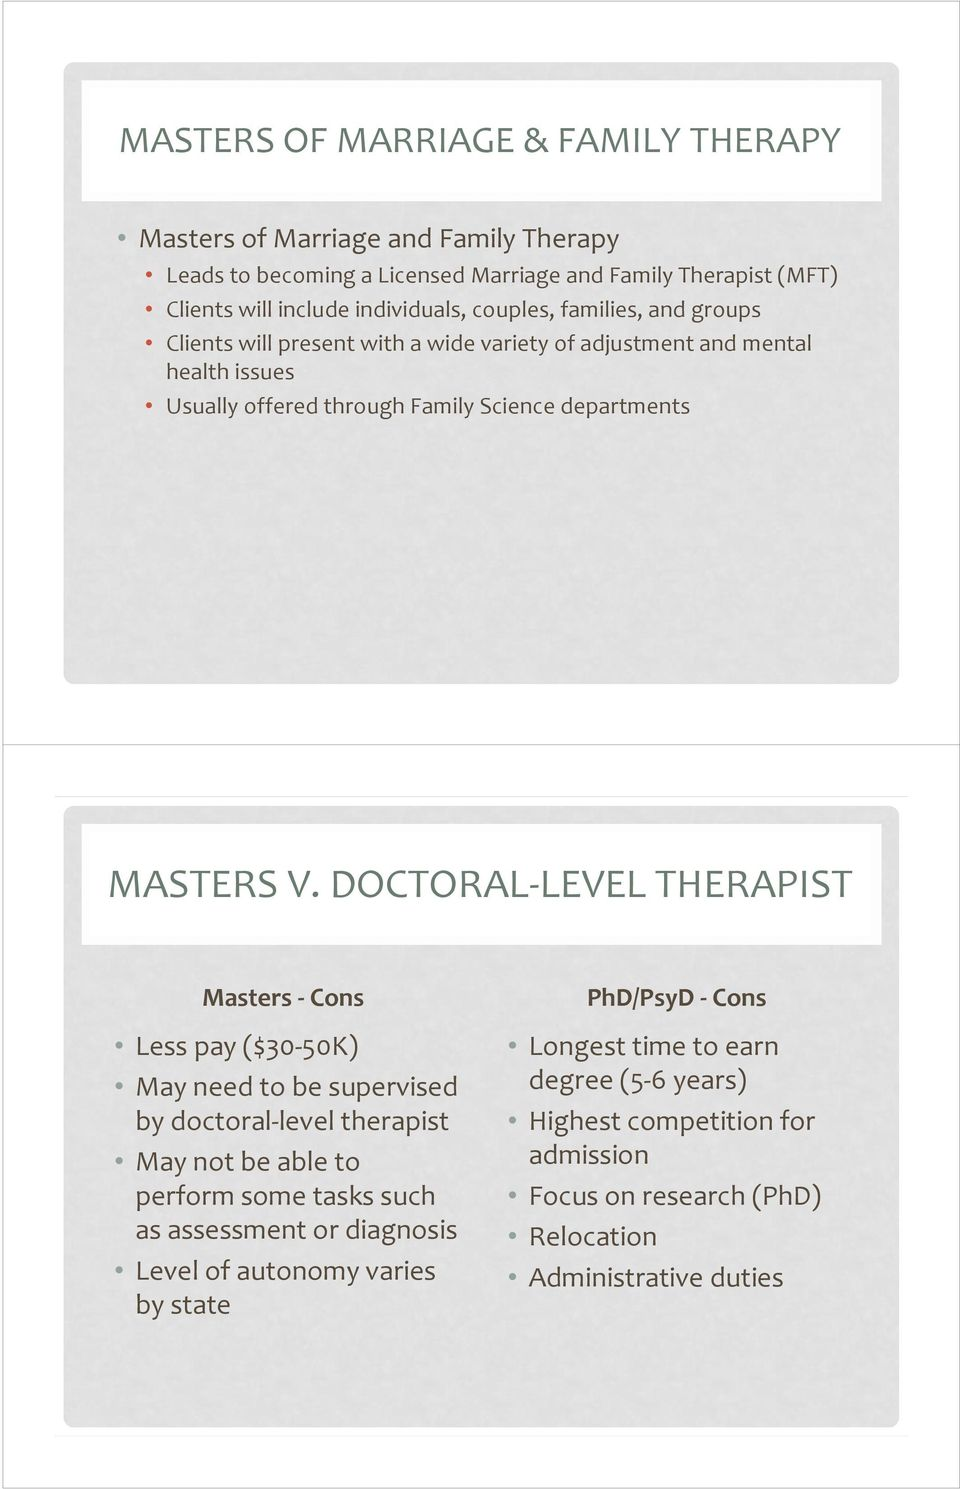 DOCTORAL LEVEL THERAPIST Masters Cons Less pay ($30 50K) May need to be supervised by doctoral level therapist May not be able to perform some tasks such as assessment or